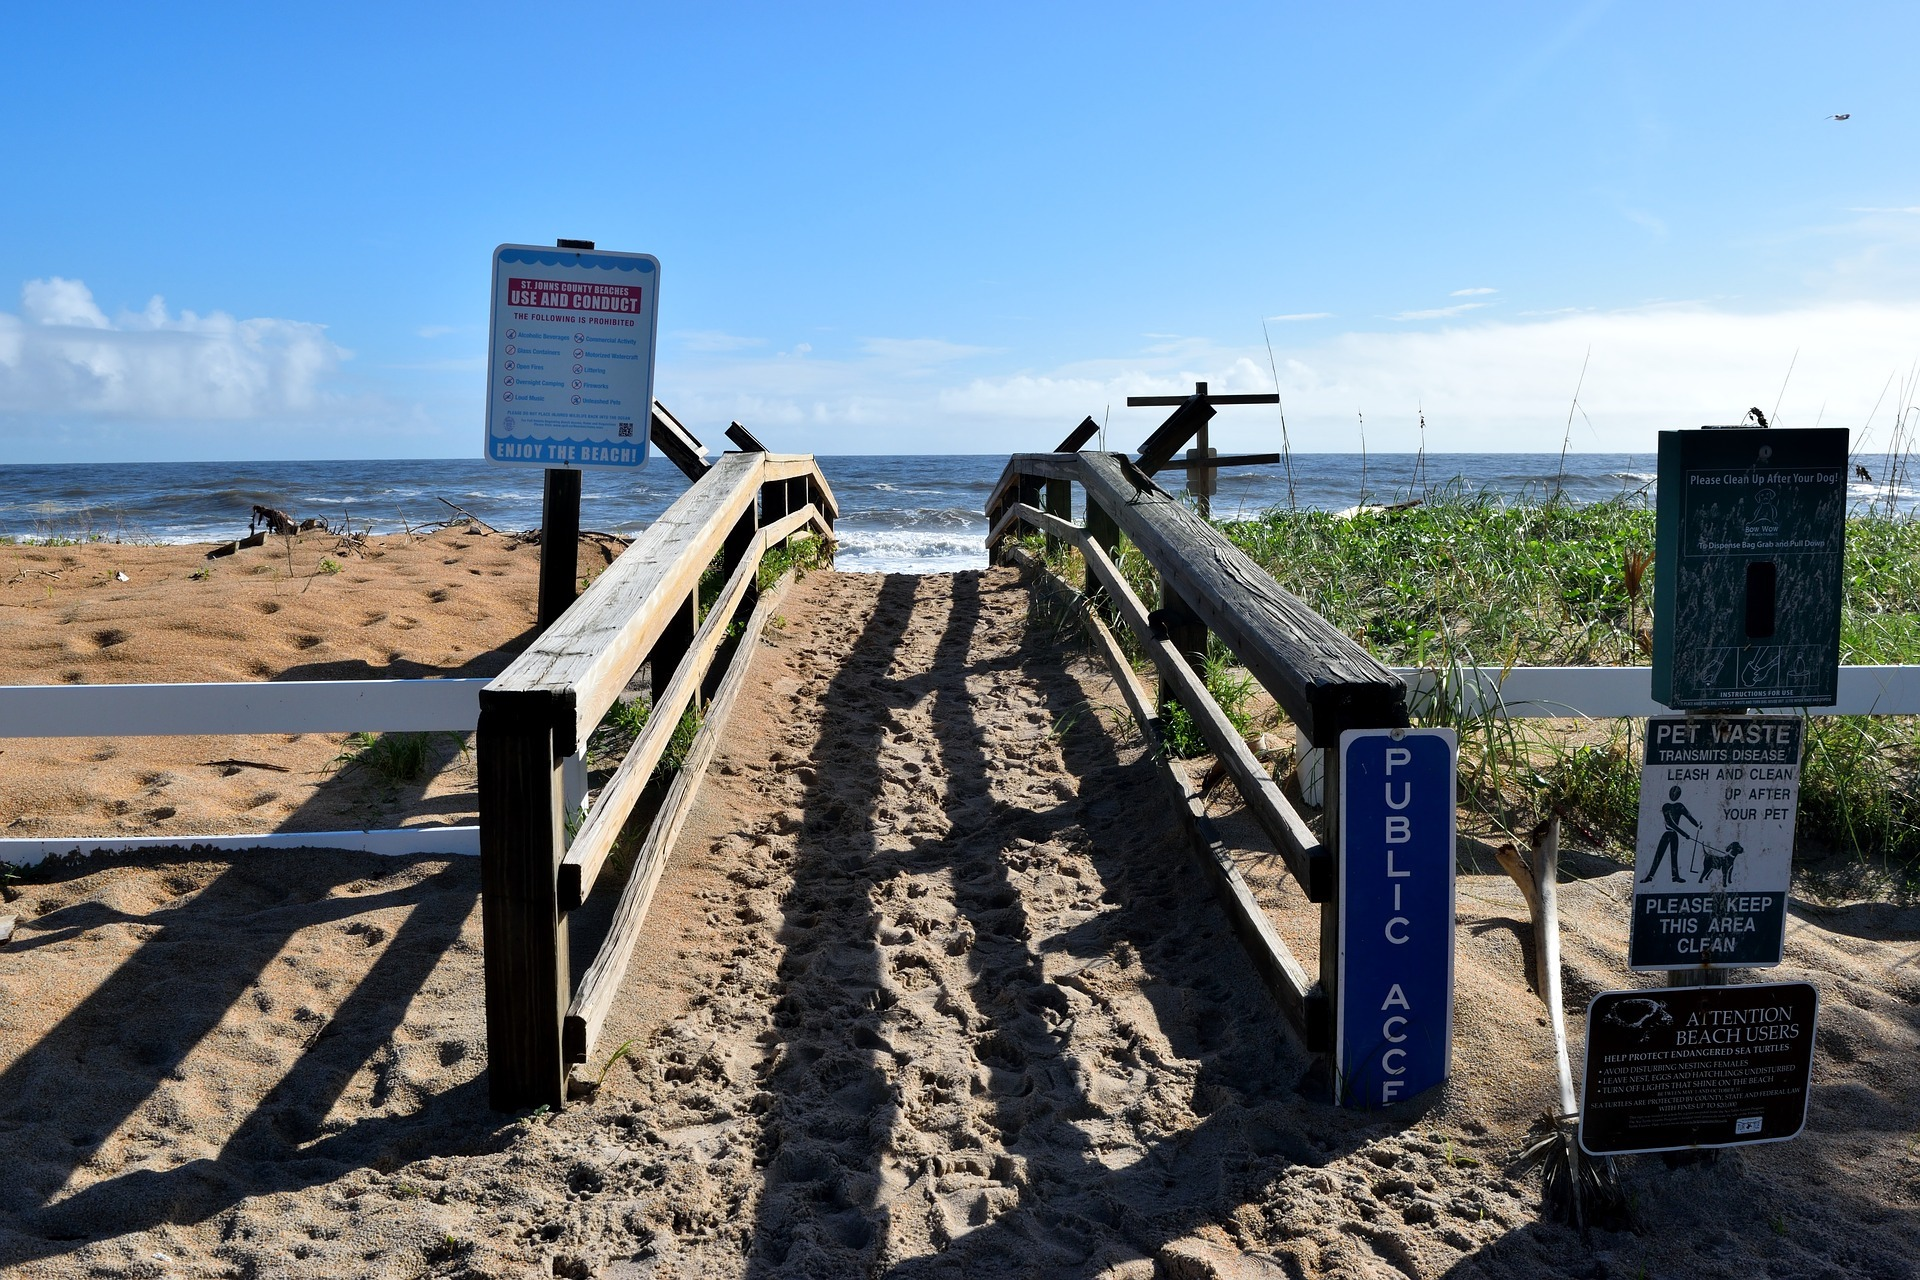 beach access ramp for people to walk on with signage